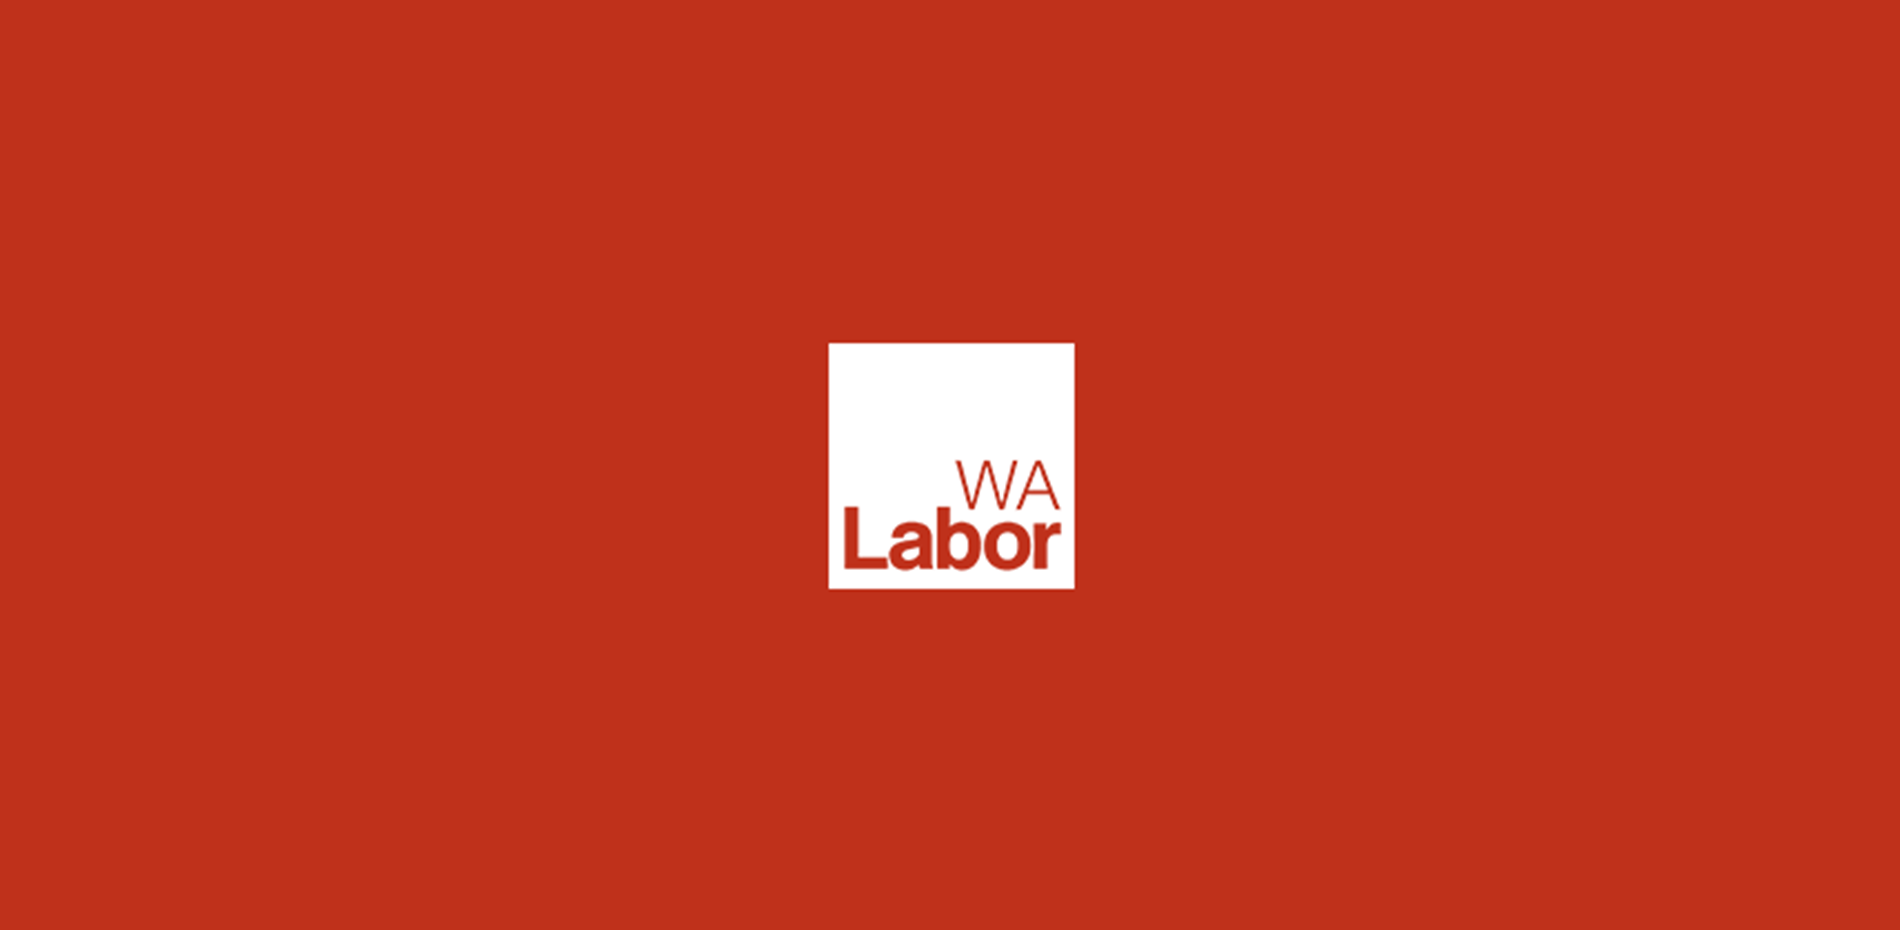 About WA Labor Main Image